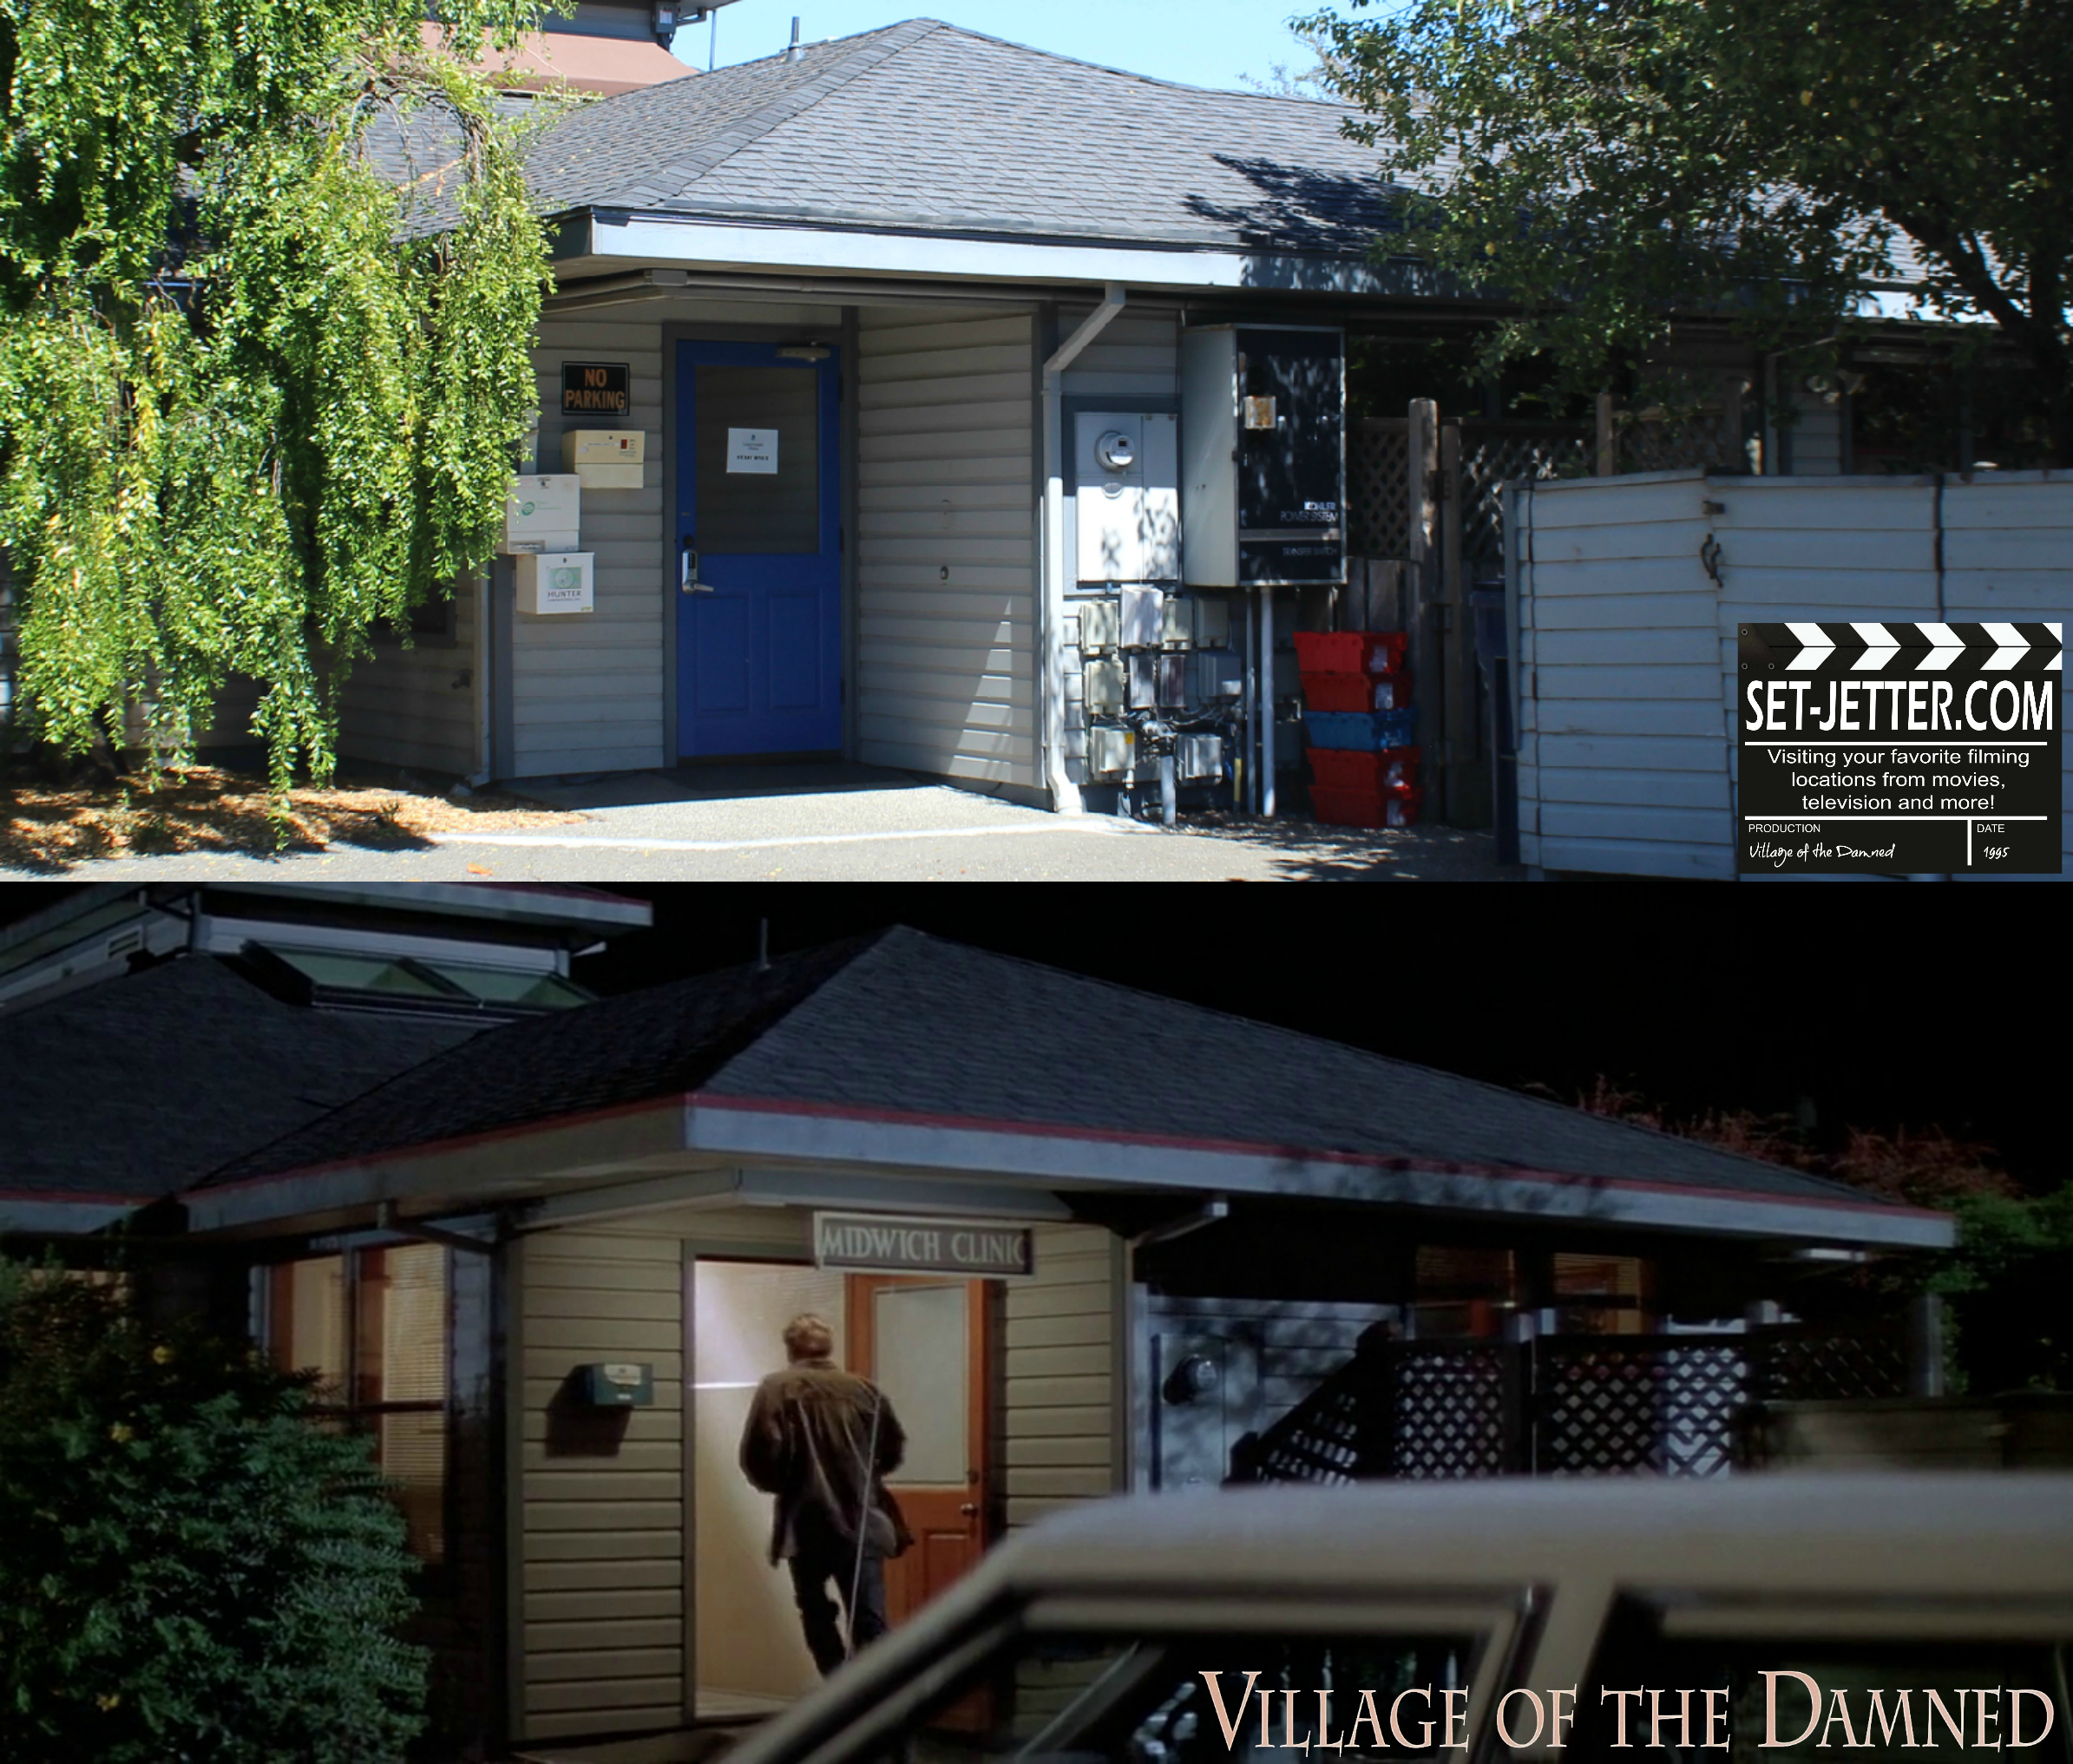 Village of the Damned comparison 145.jpg